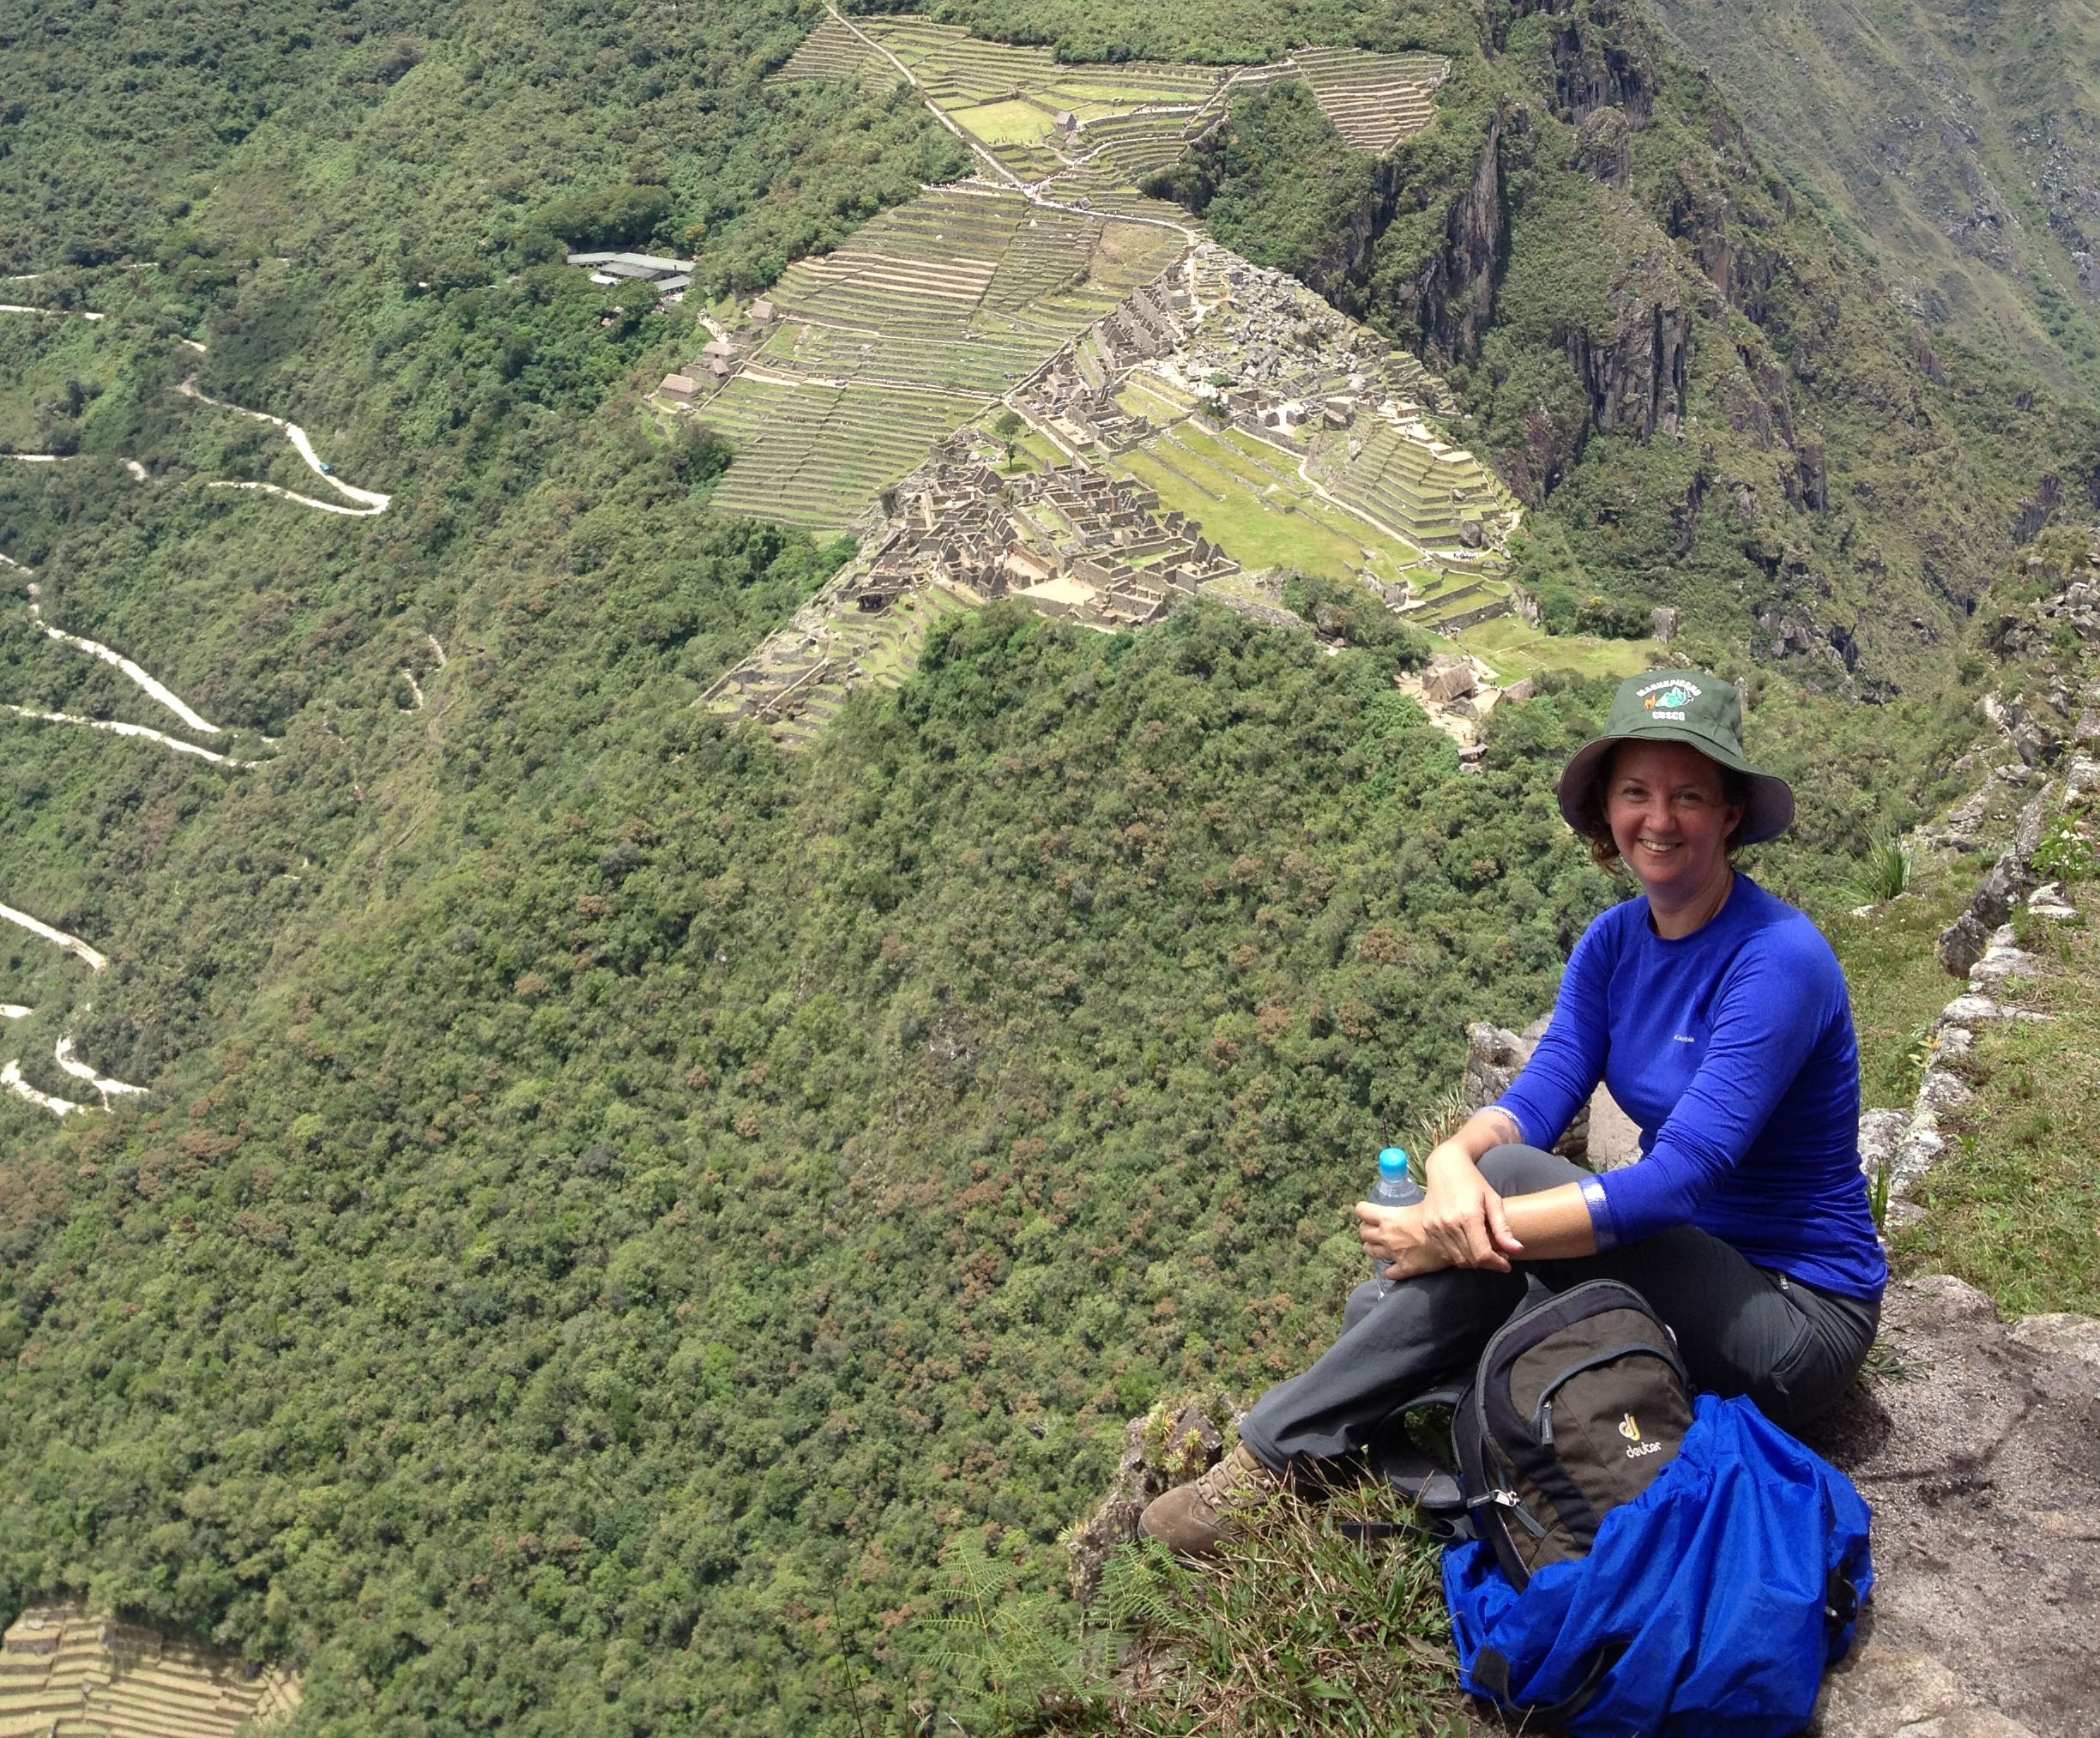 Overlooking machu picchu photo